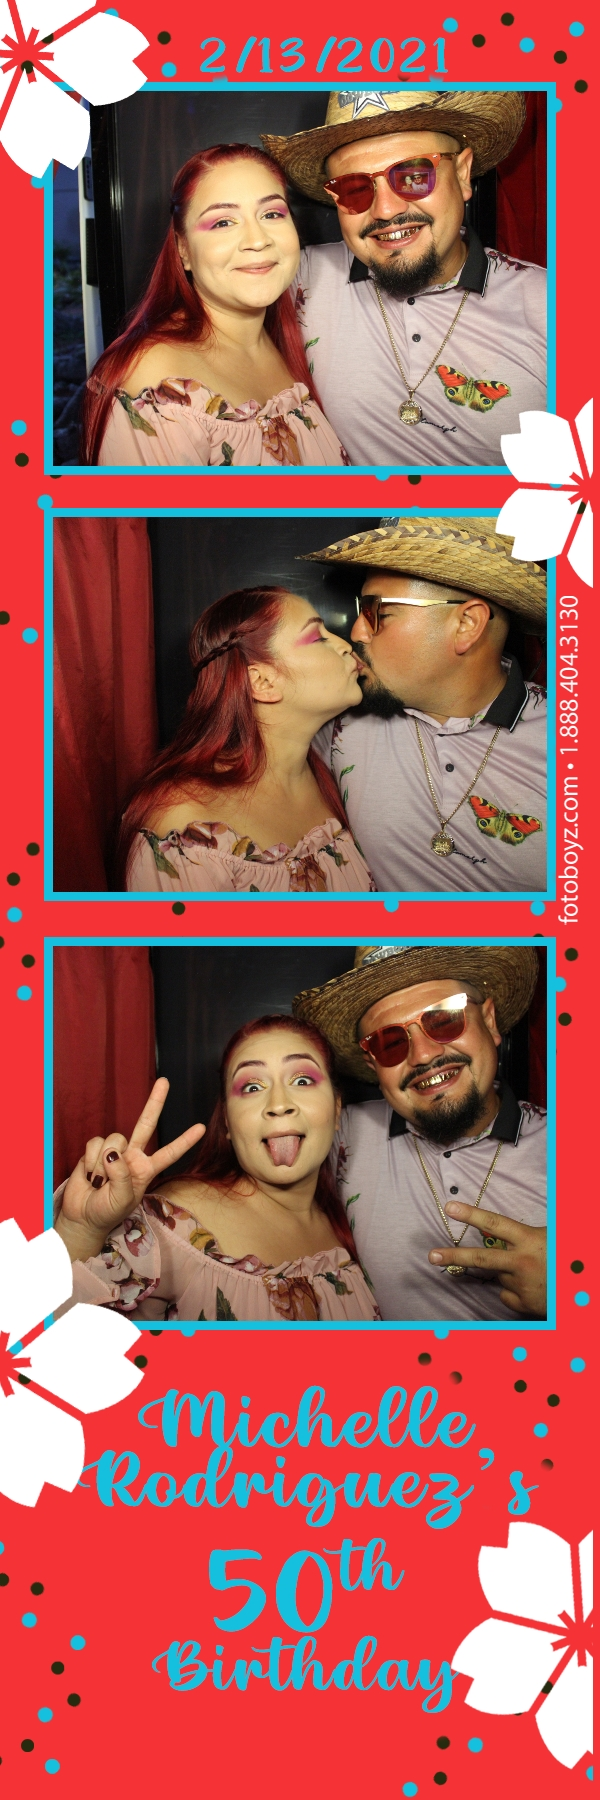 Michelles 50th birthday vintage sit down photo booth 1